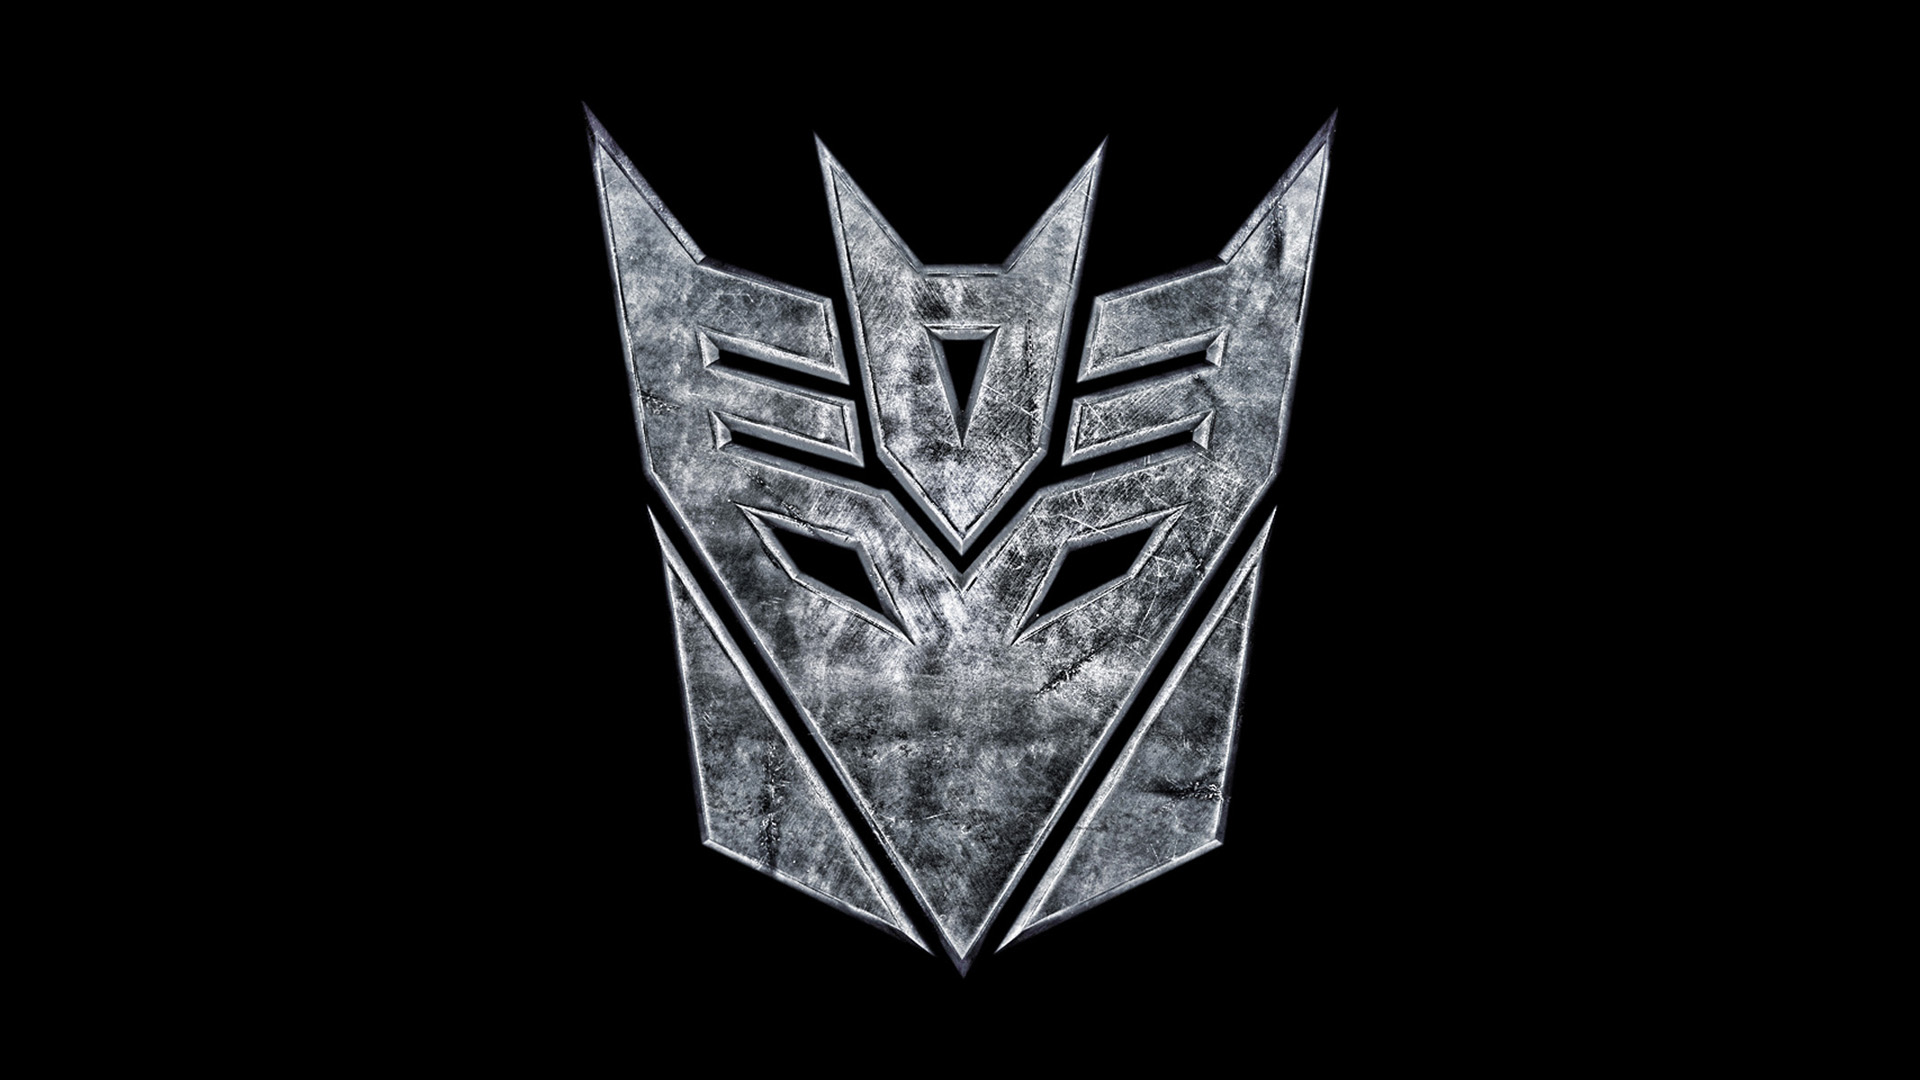 Transformers Autobot Logo Exclusive HD Wallpapers 5141   Ecro 1920x1080